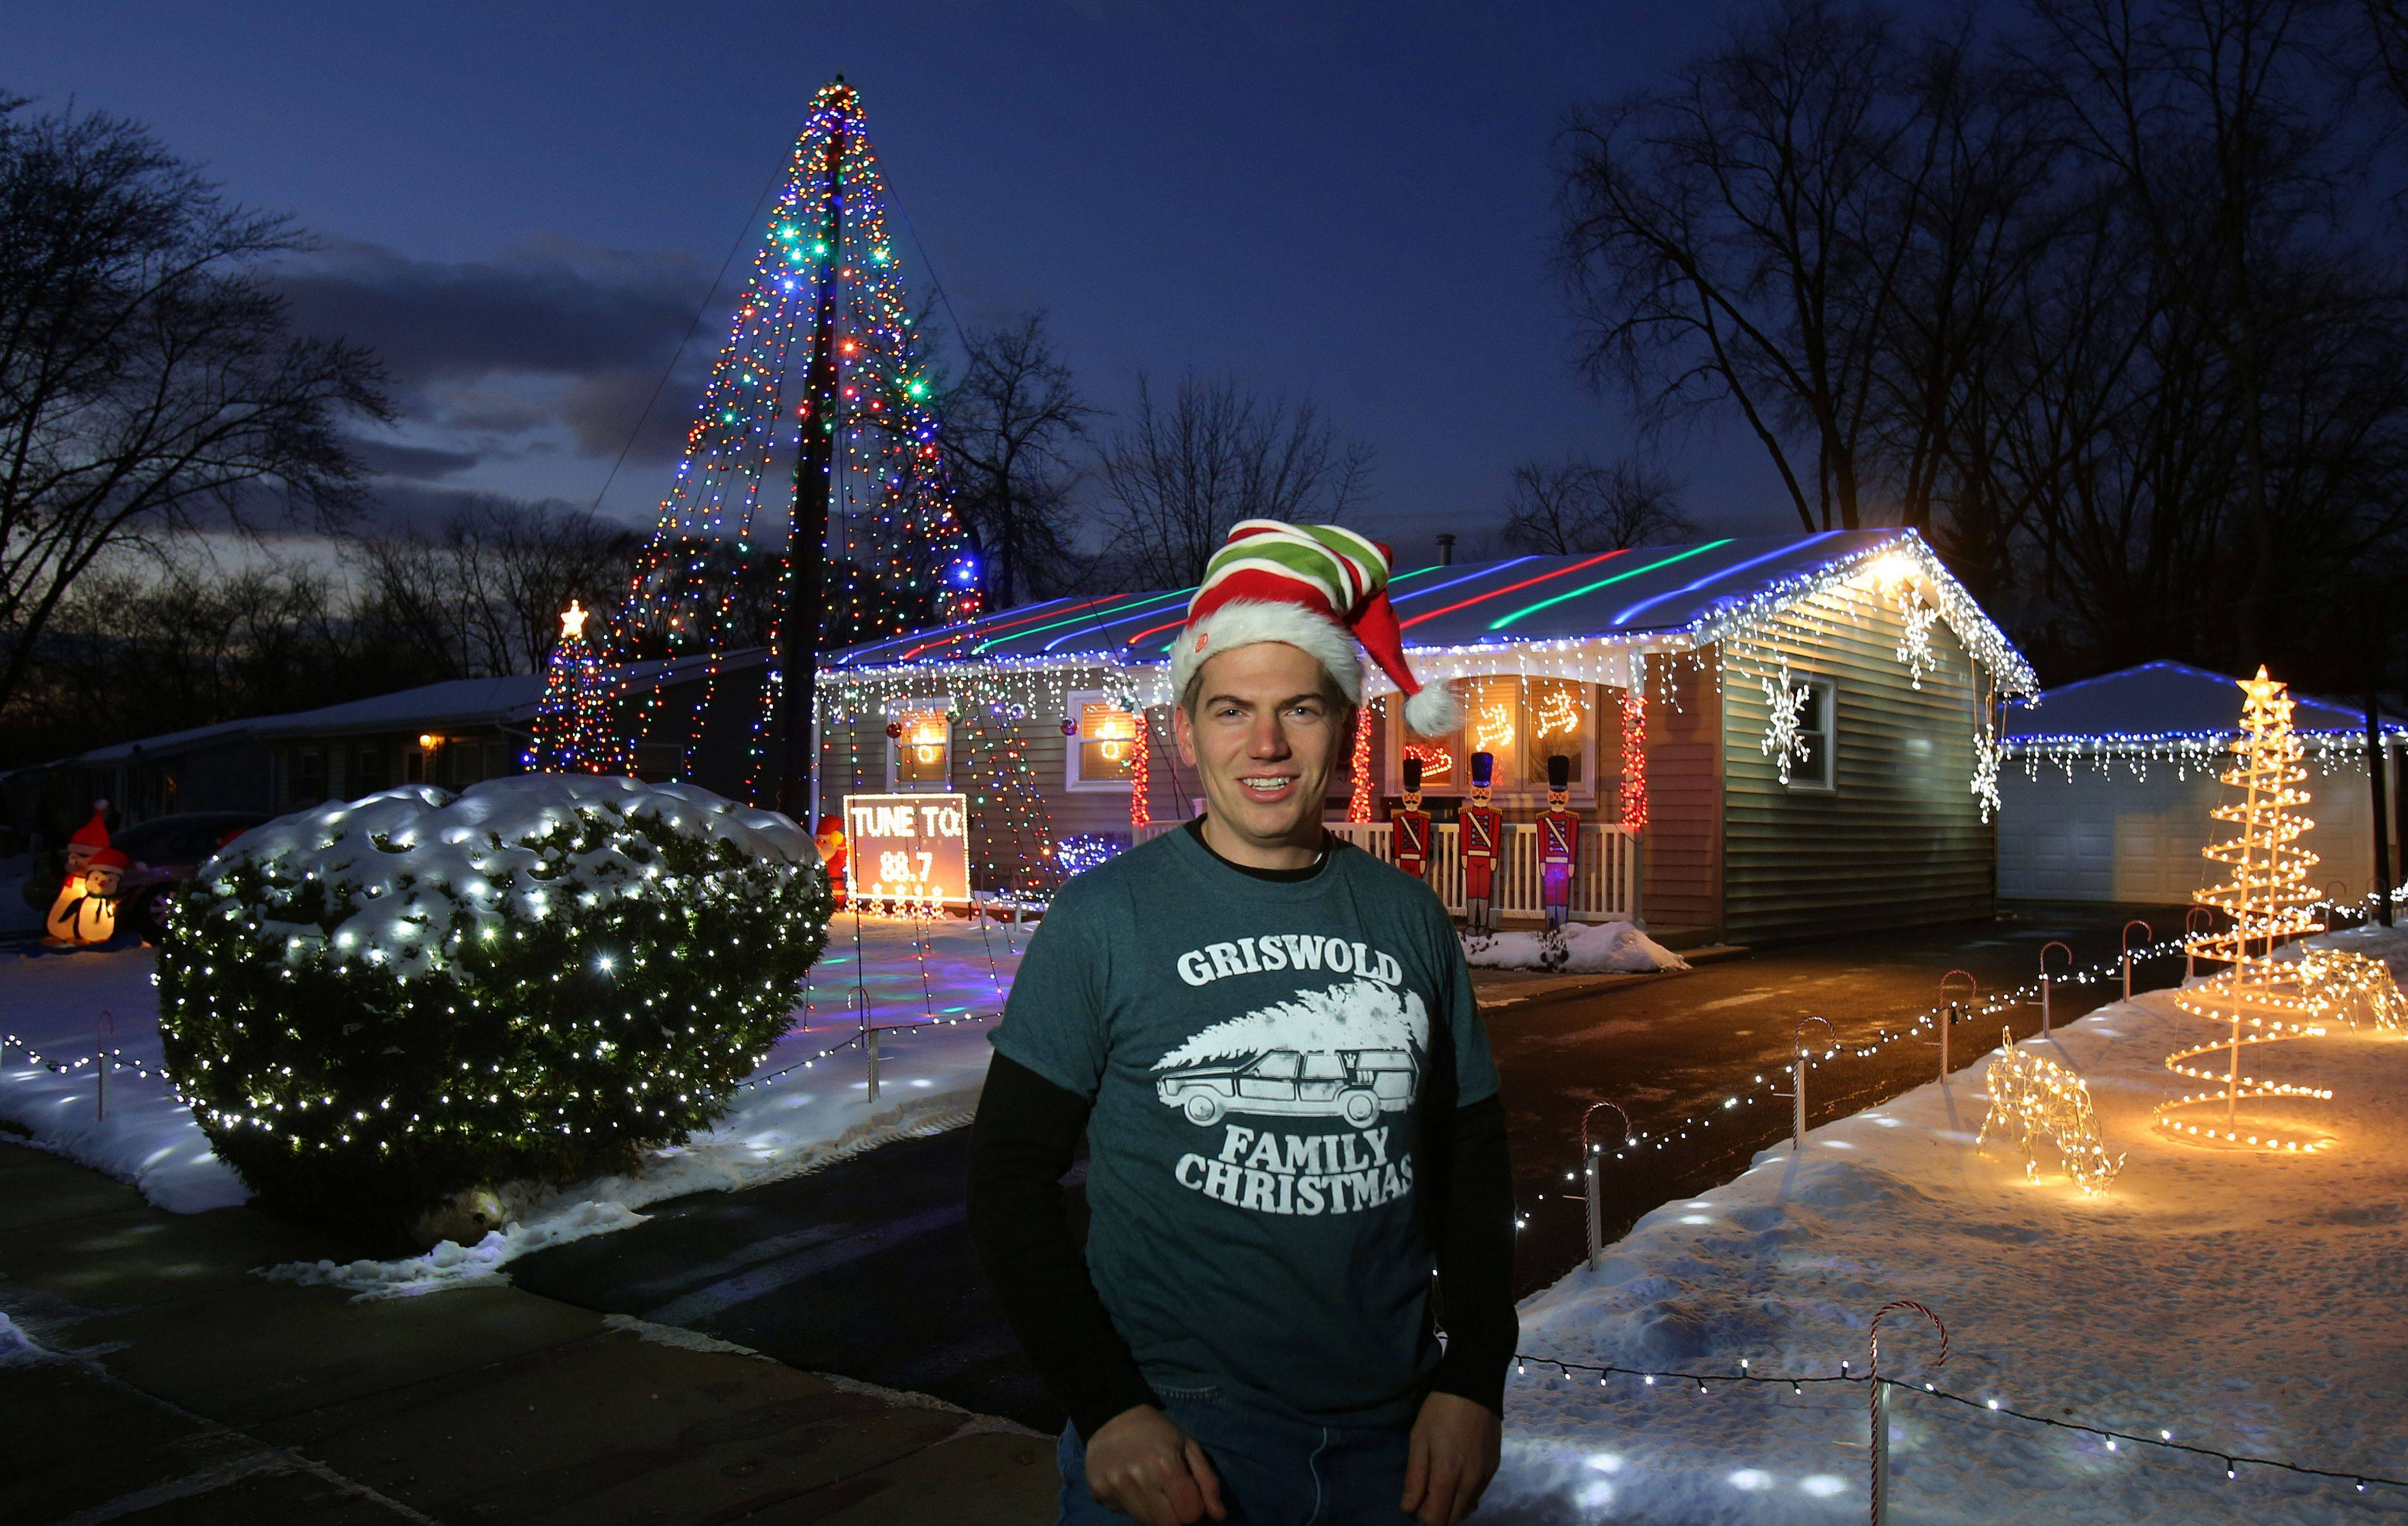 Mark Tarkowski's display at 653 Walnut Road in Wauconda won the Editor's Choice award for Lake County in the Daily Herald's holiday lights contest.